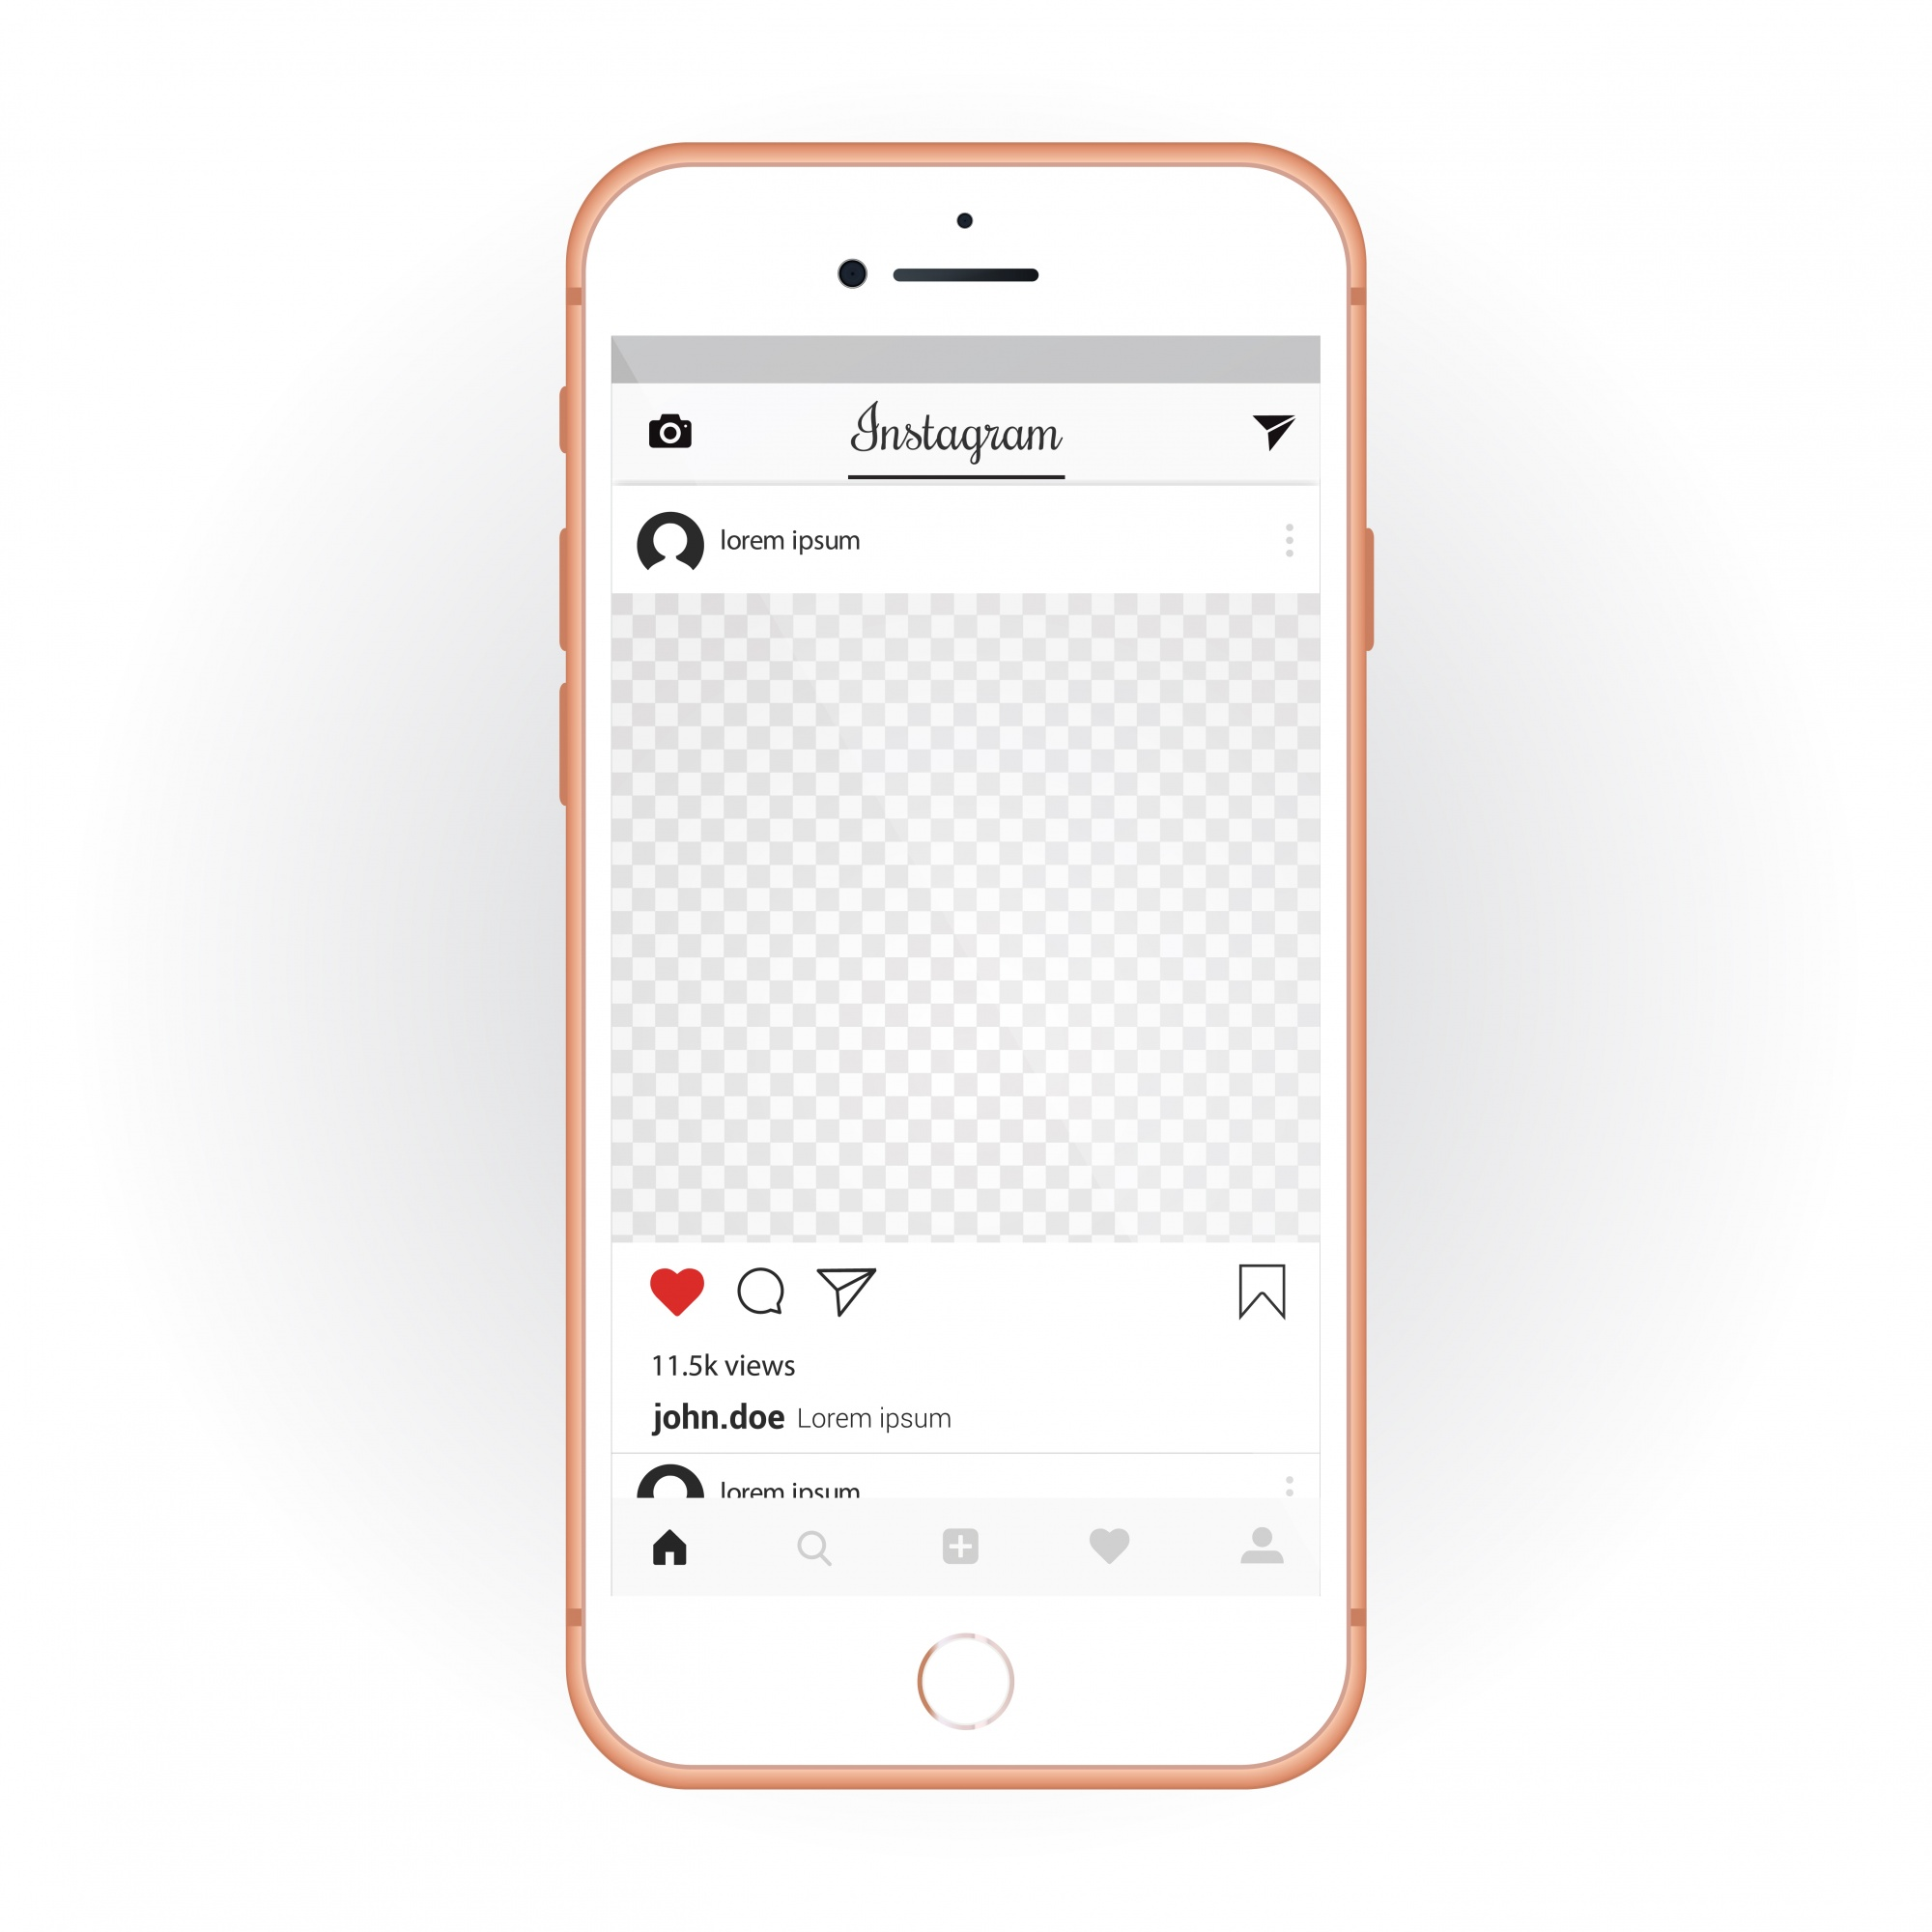 IPhone with mobile UI kit Instagram. Smartphone mockup and chat app